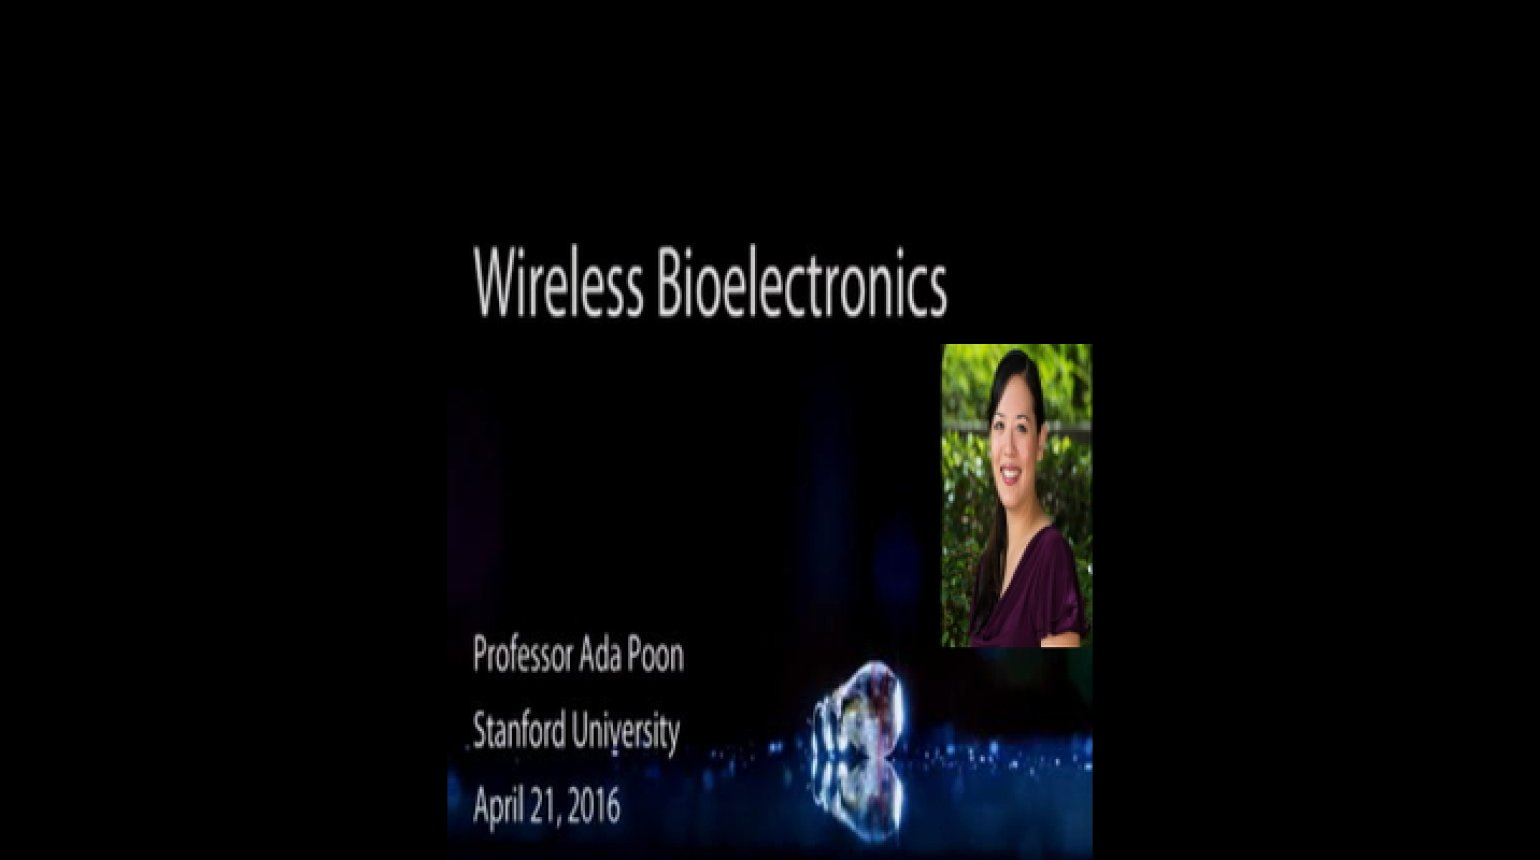 Wireless Bioelectronics Video